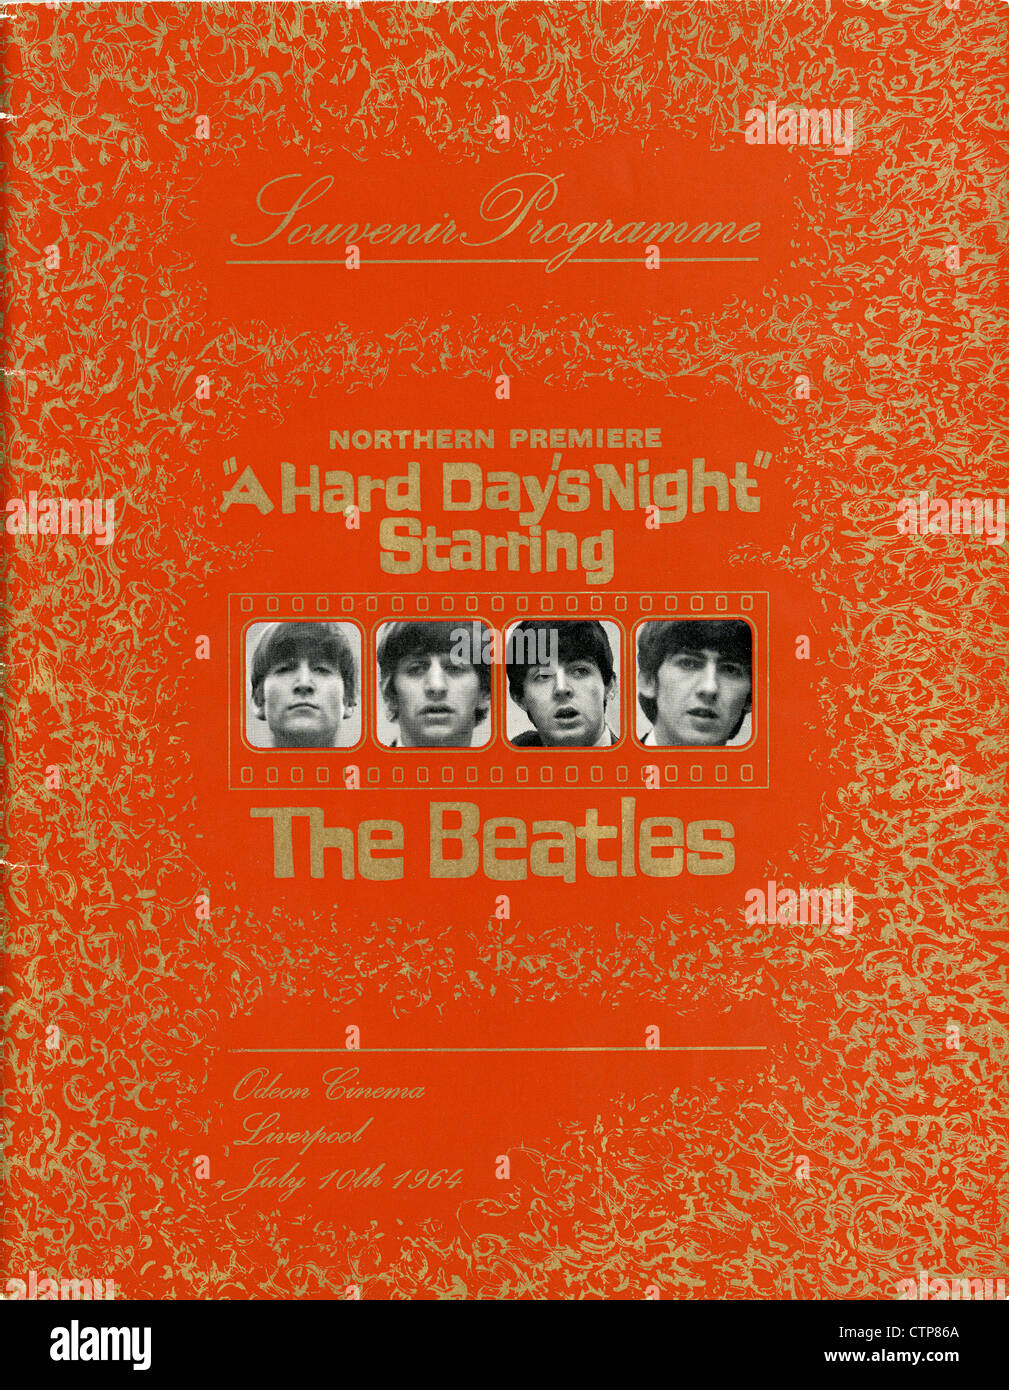 001085 - The Beatles 'A Hard Day's Night' Northern Premiere Souvenir Programme from the Liverpool Odeon - Stock Image